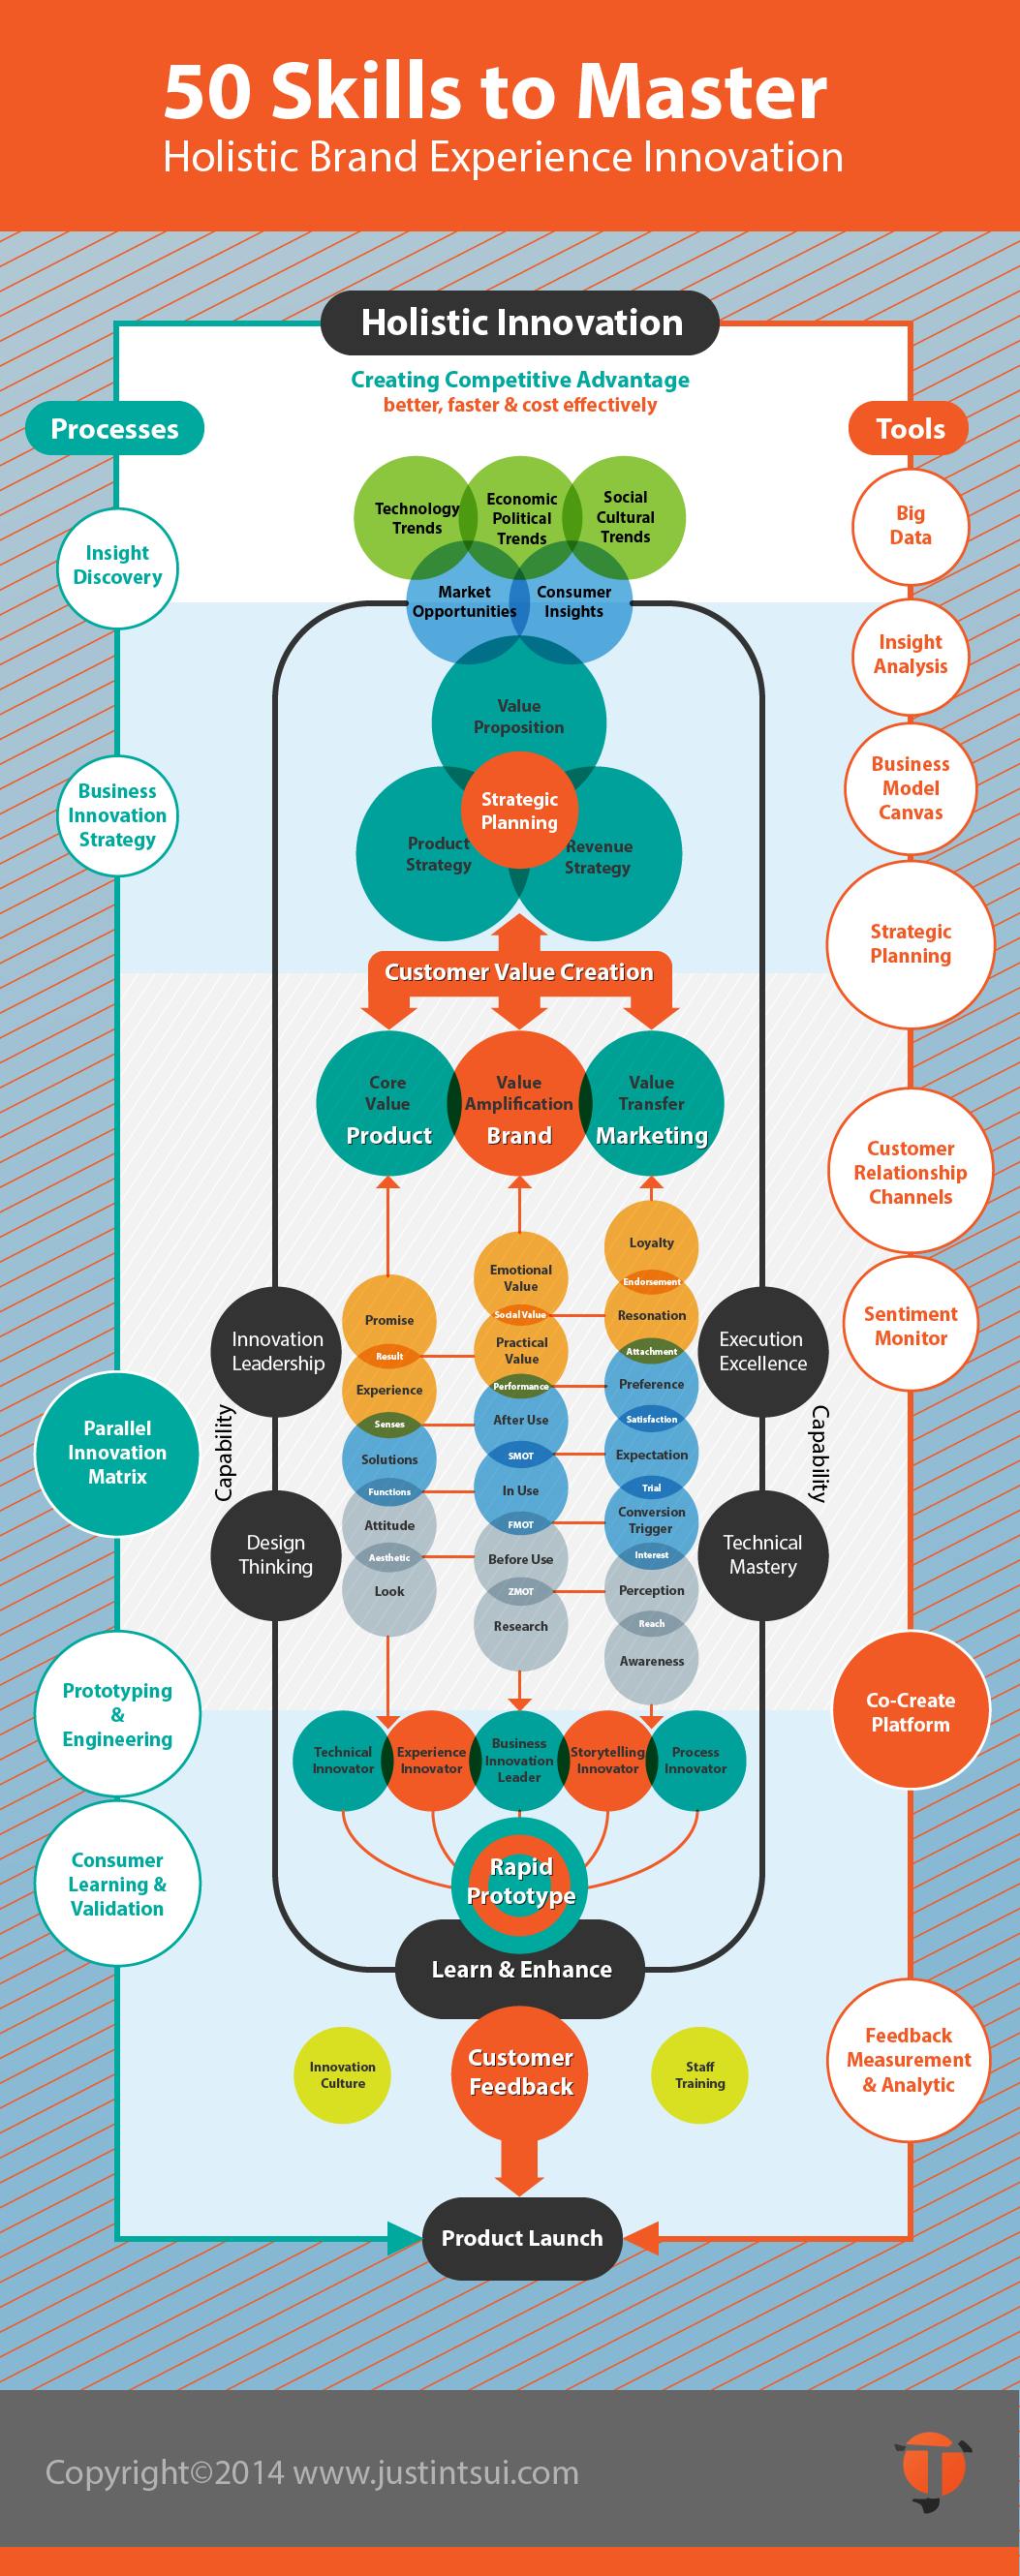 50 Steps Holistic Brand Experience Innovation Framework by Justin Tsui May2014